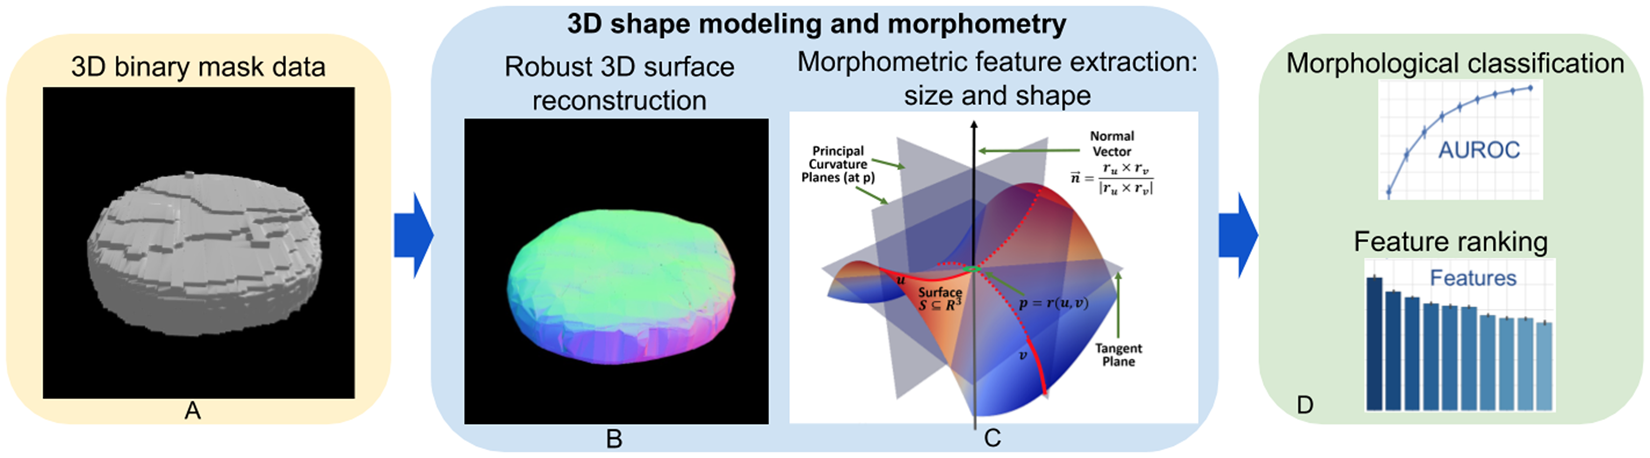 importance of studying morphology